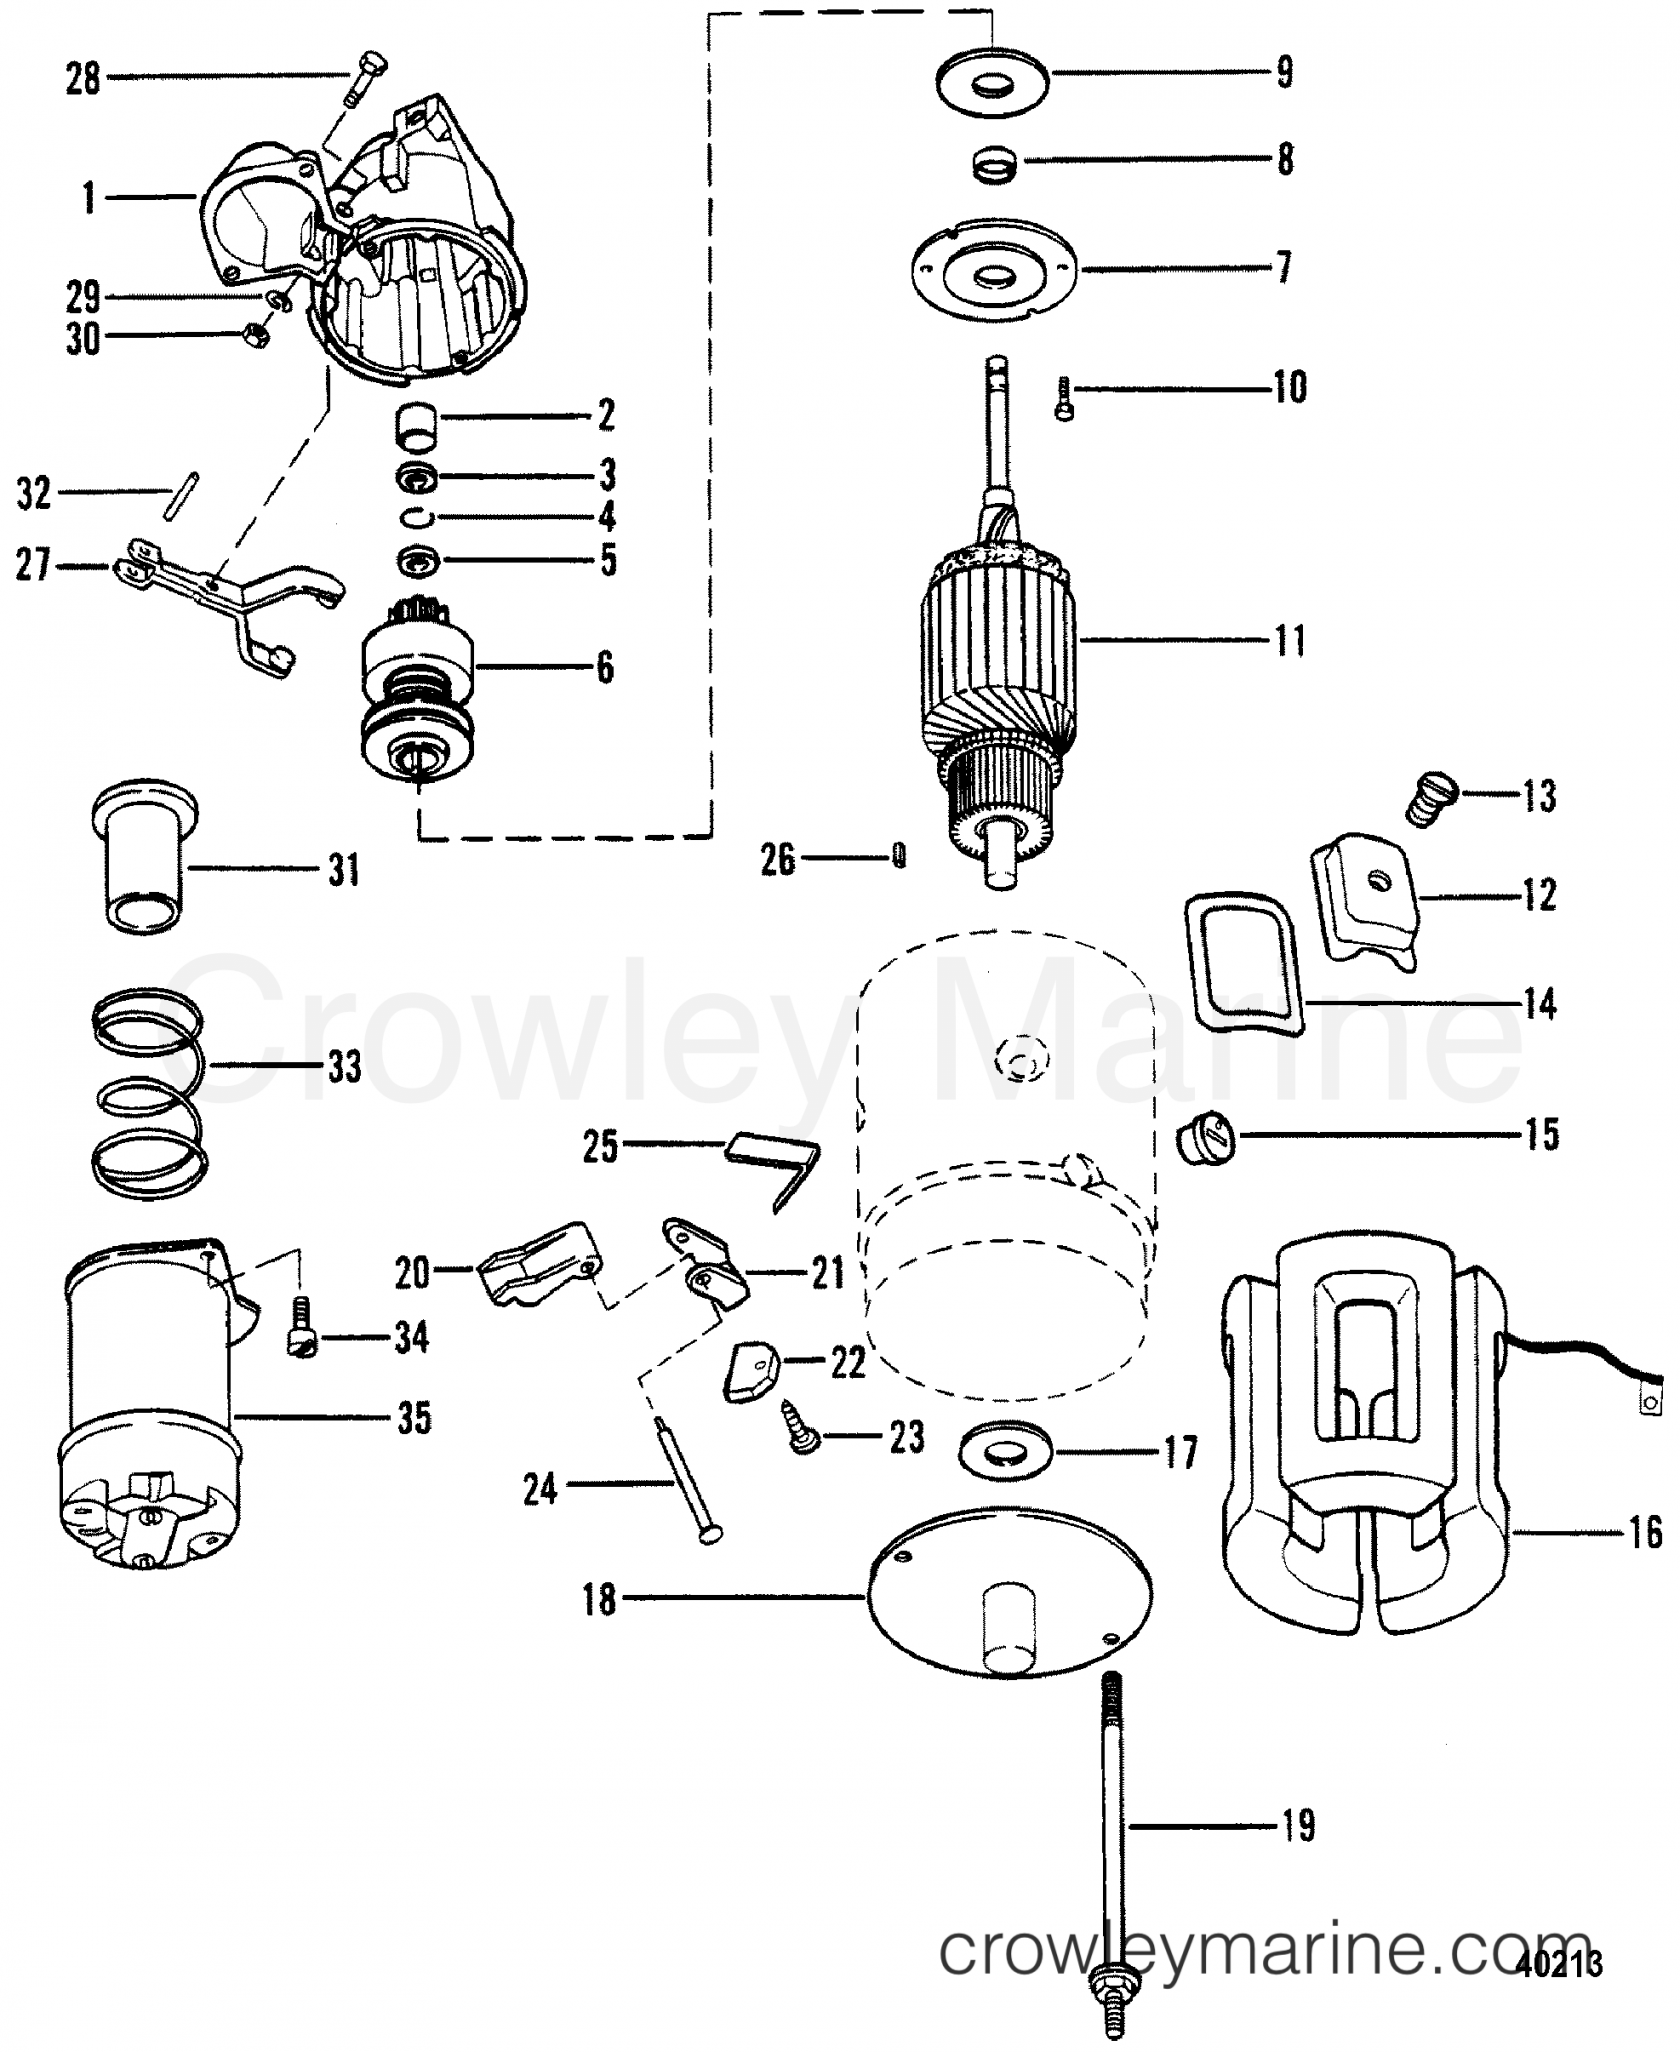 Electric motor drawing at getdrawings free for personal use